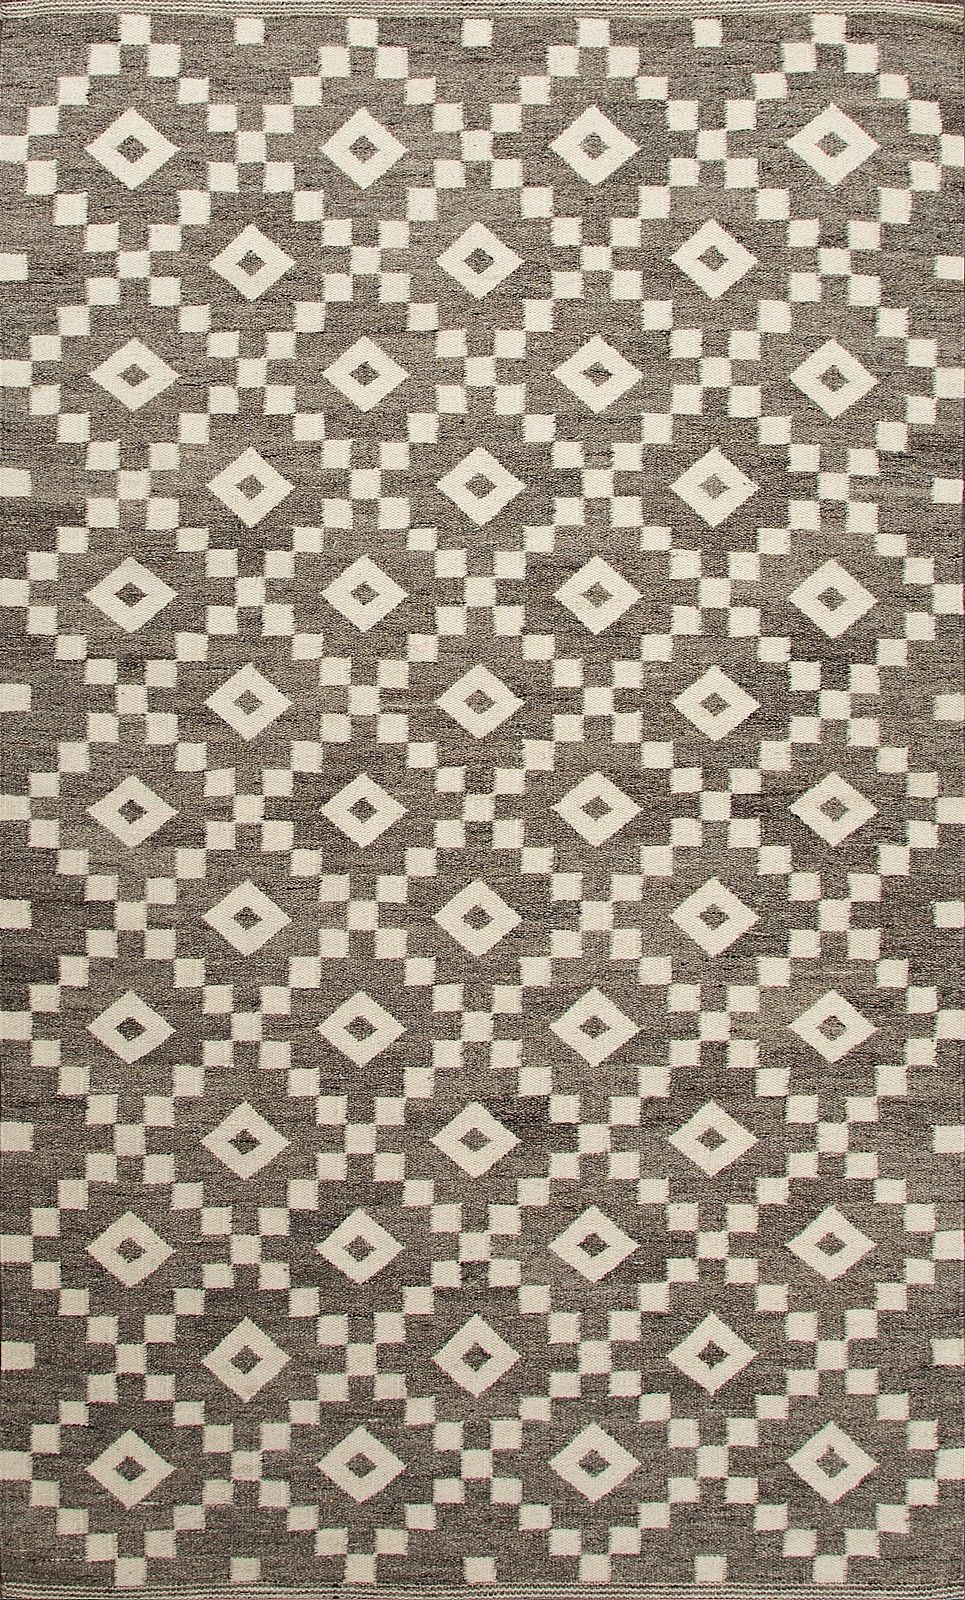 jaipur scandinavia nordic contemporary area rug collection